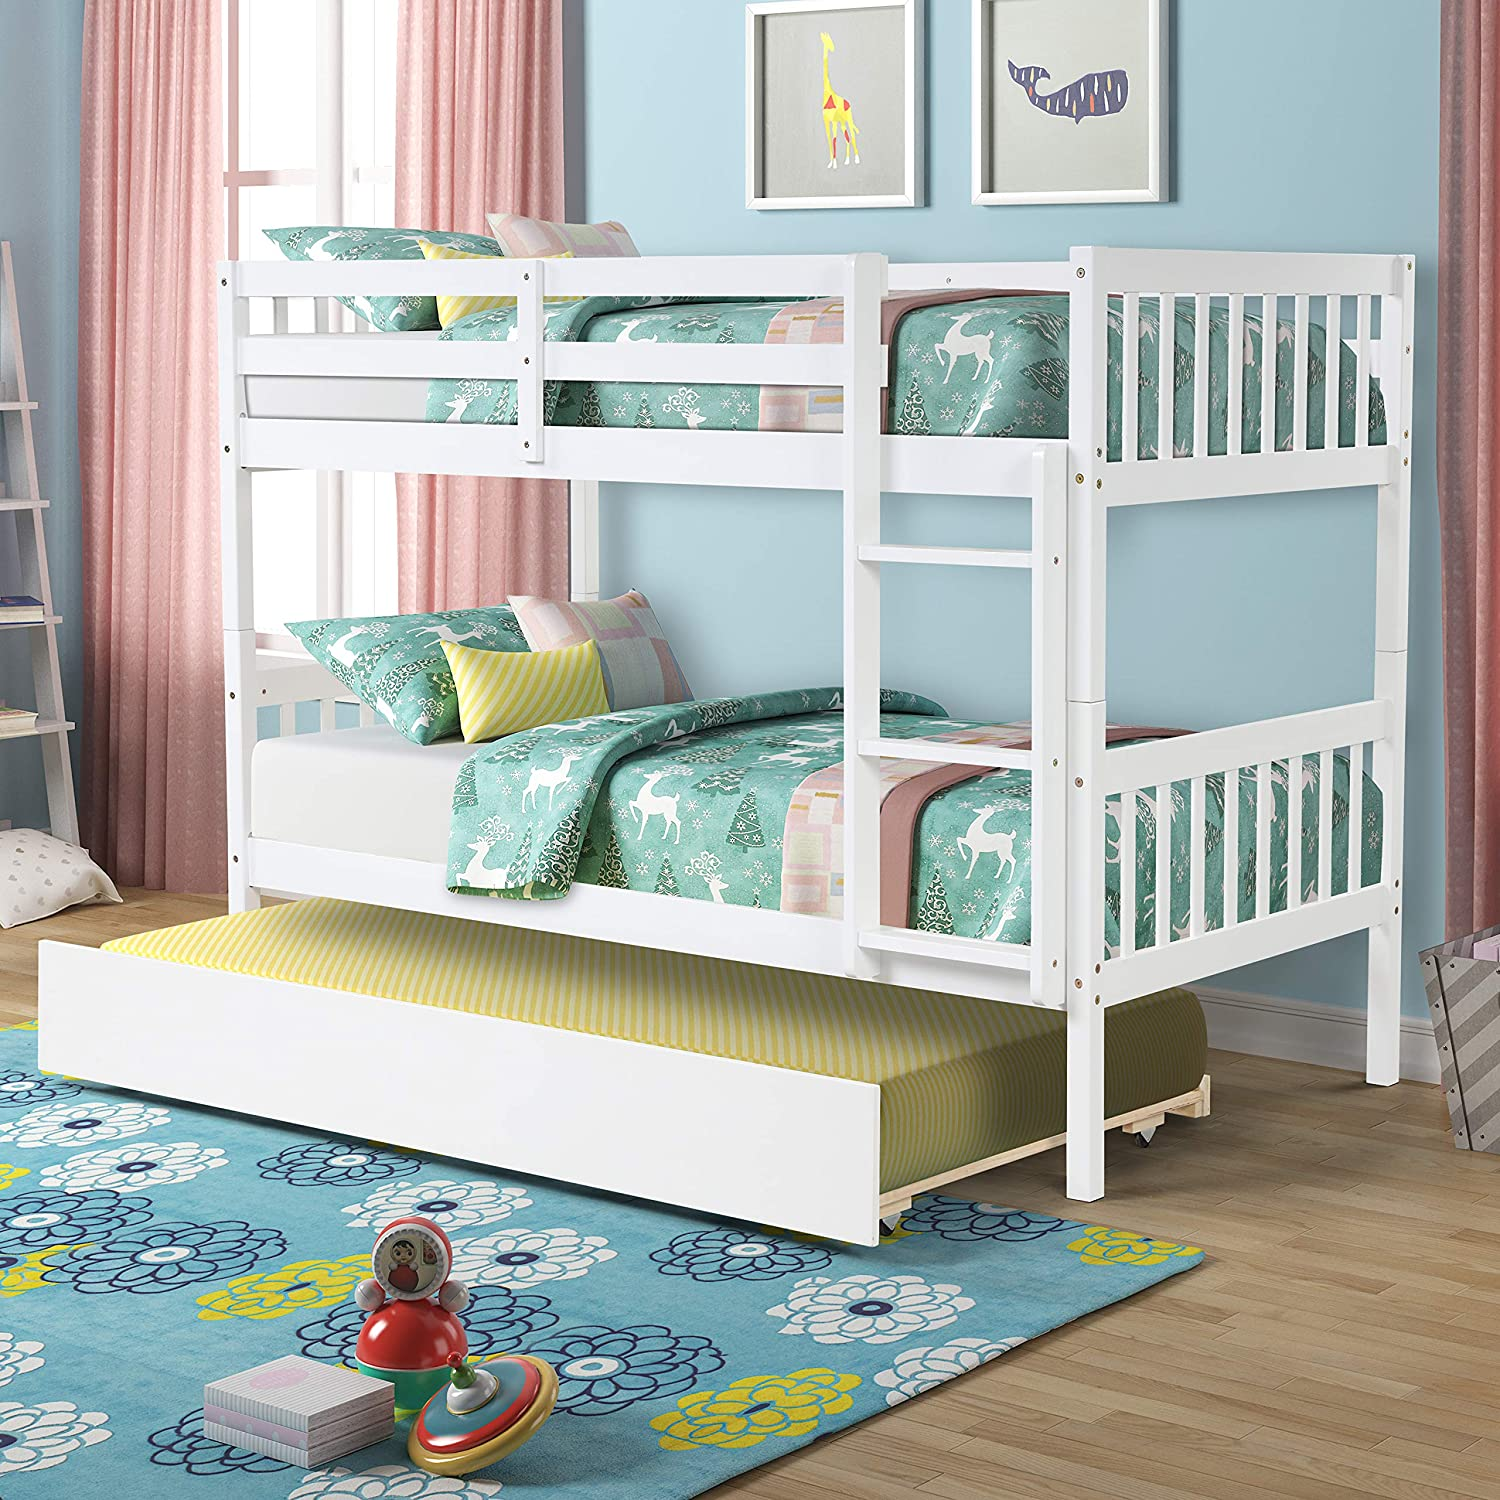 Longrune security Detachable Bunk Bed Trundle Sturdy Pine Frame Id Baltimore Mall Wood